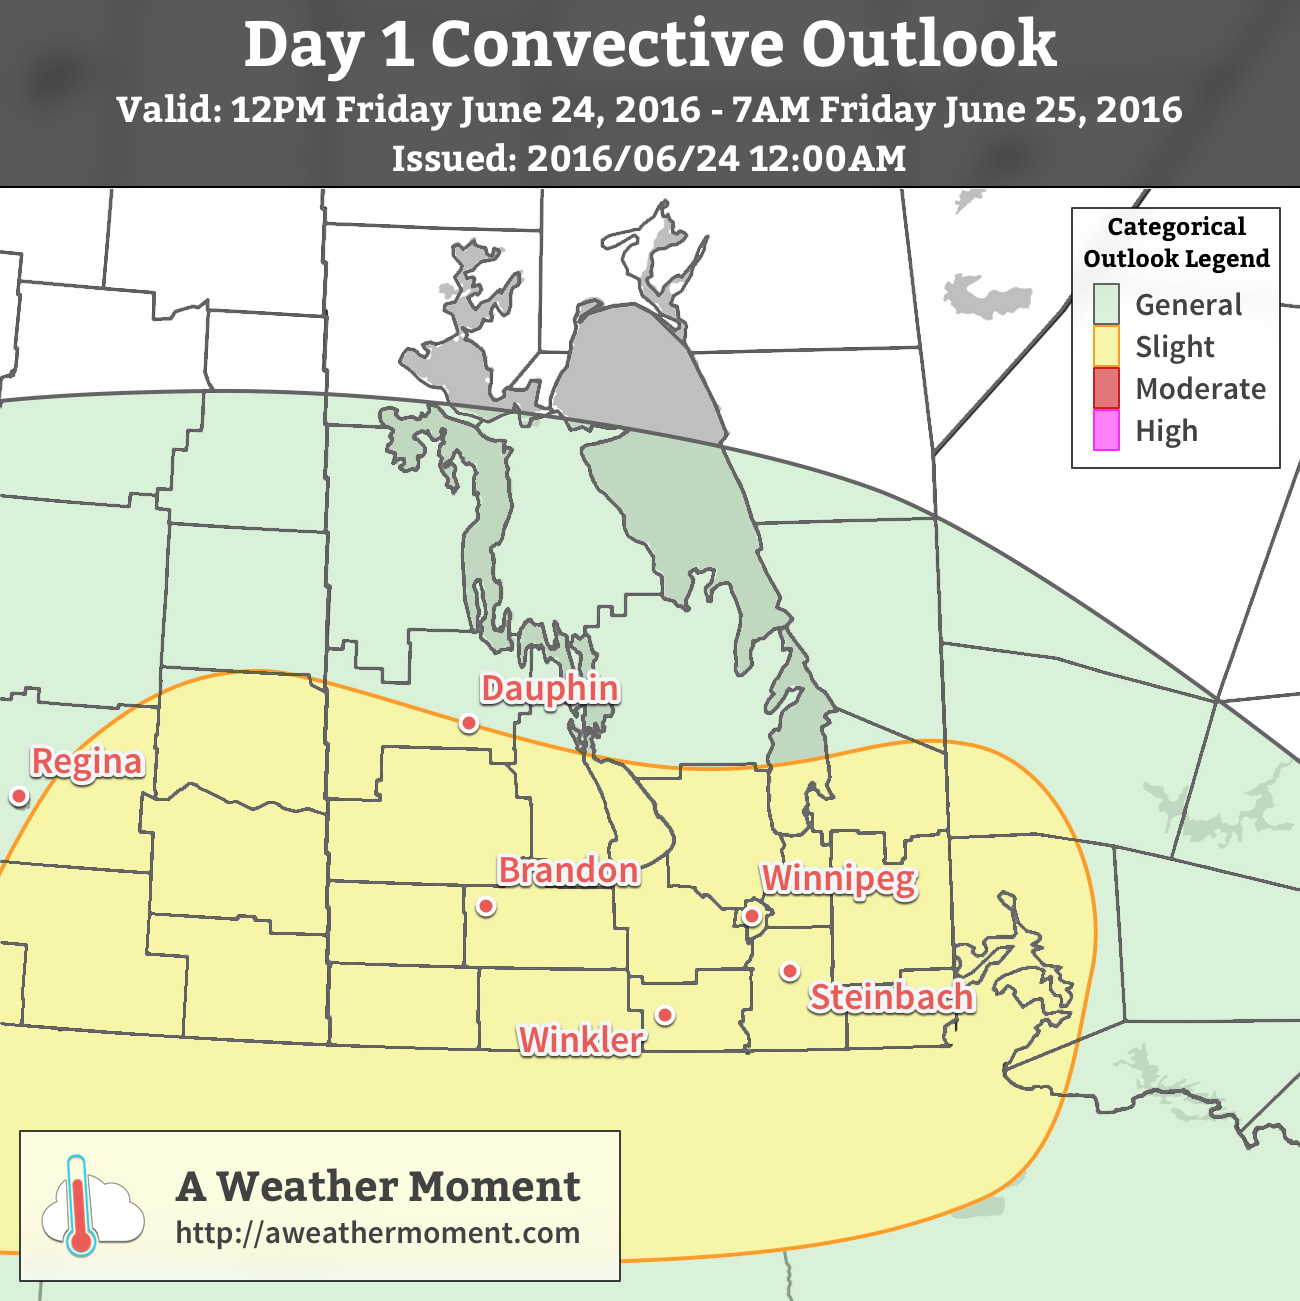 AWM Convective Outlook for June 24/25, 2016